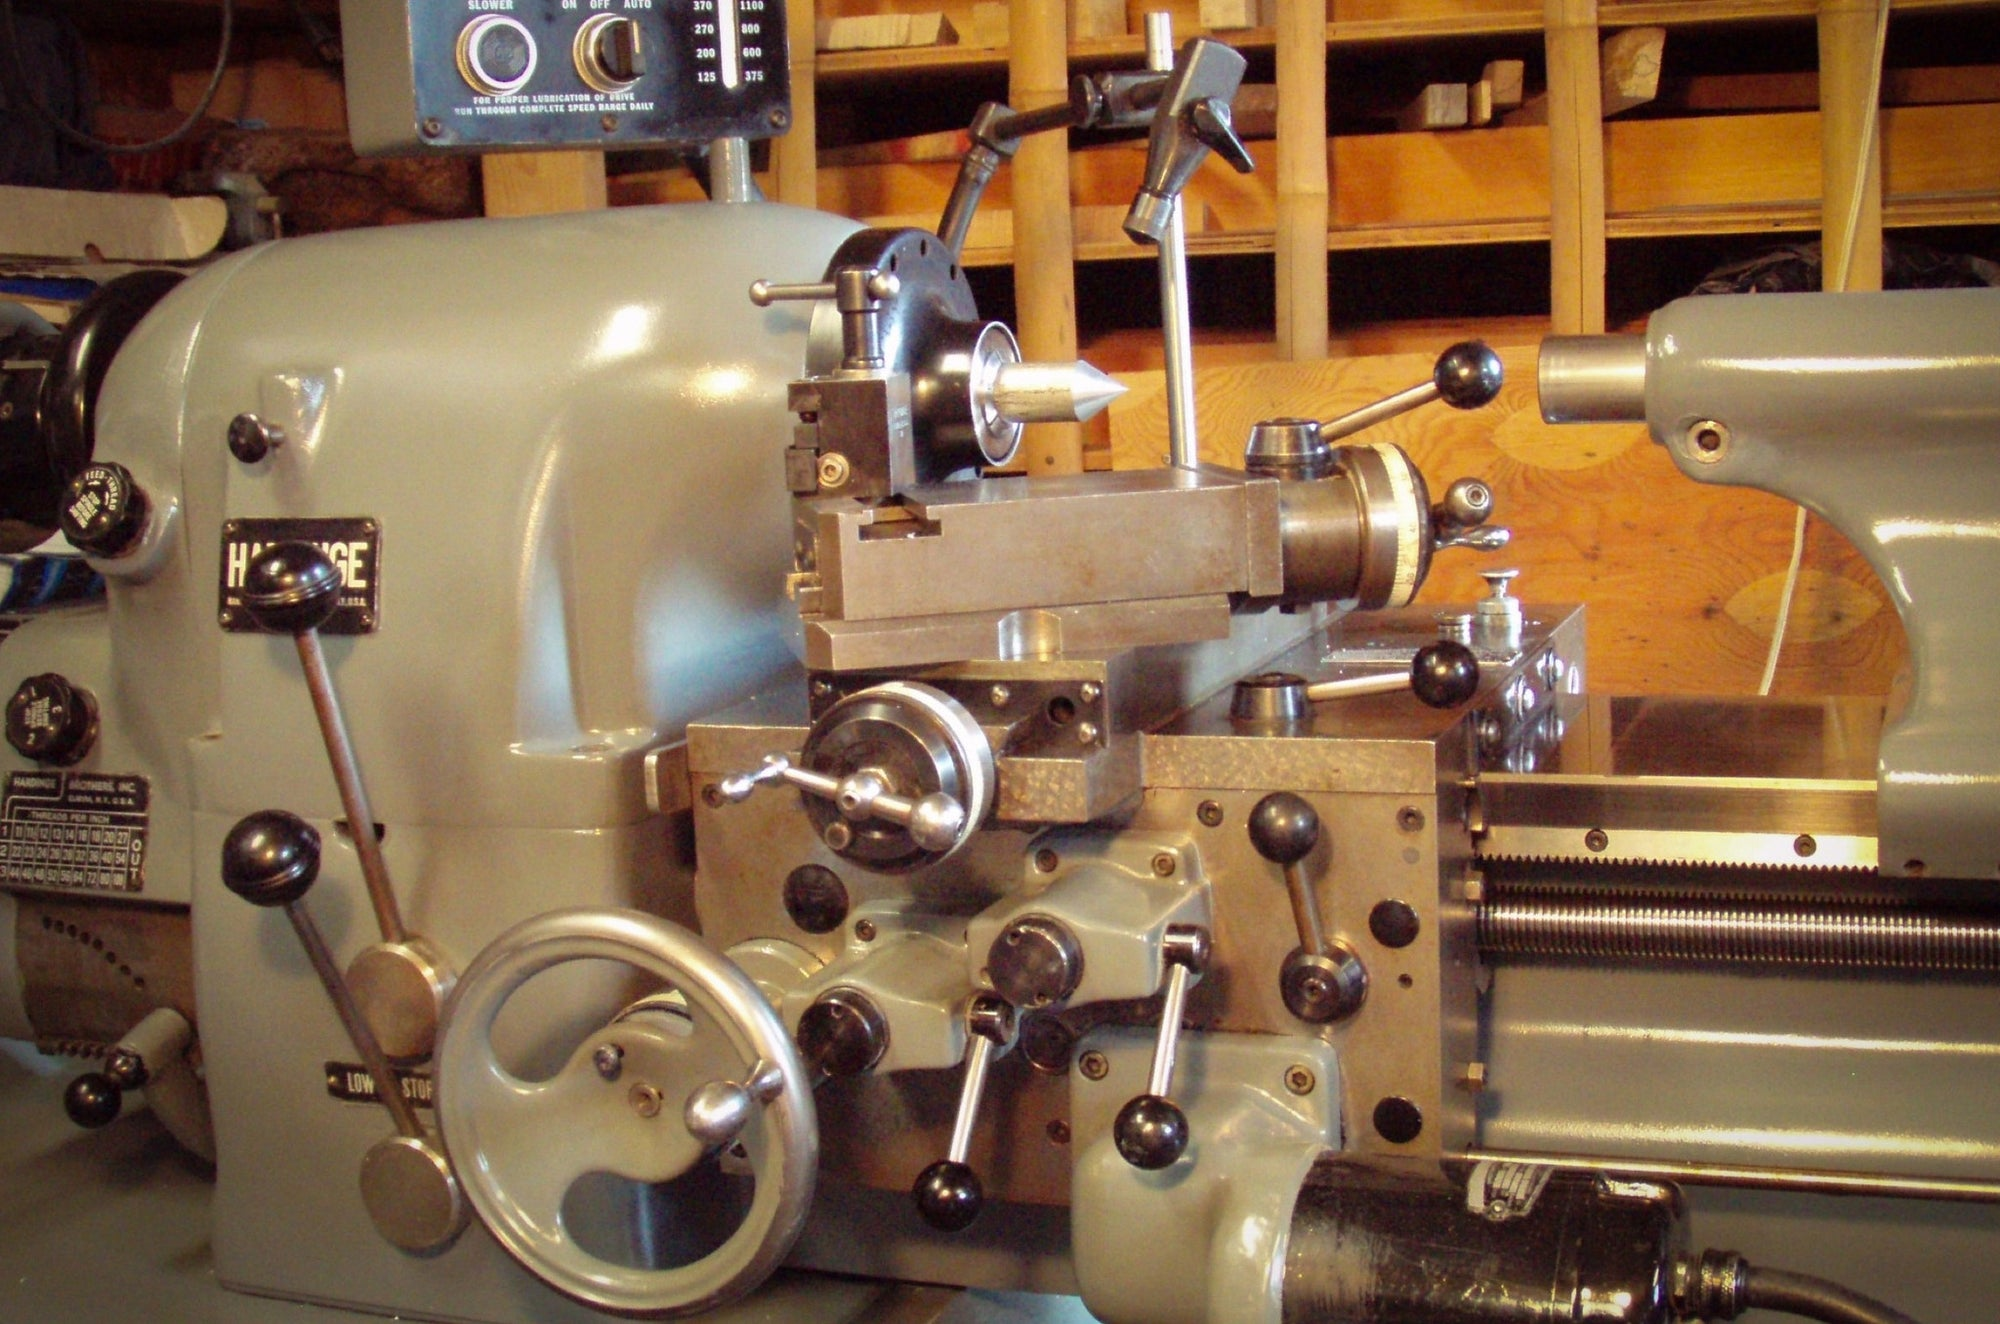 New Lathes for a New Year